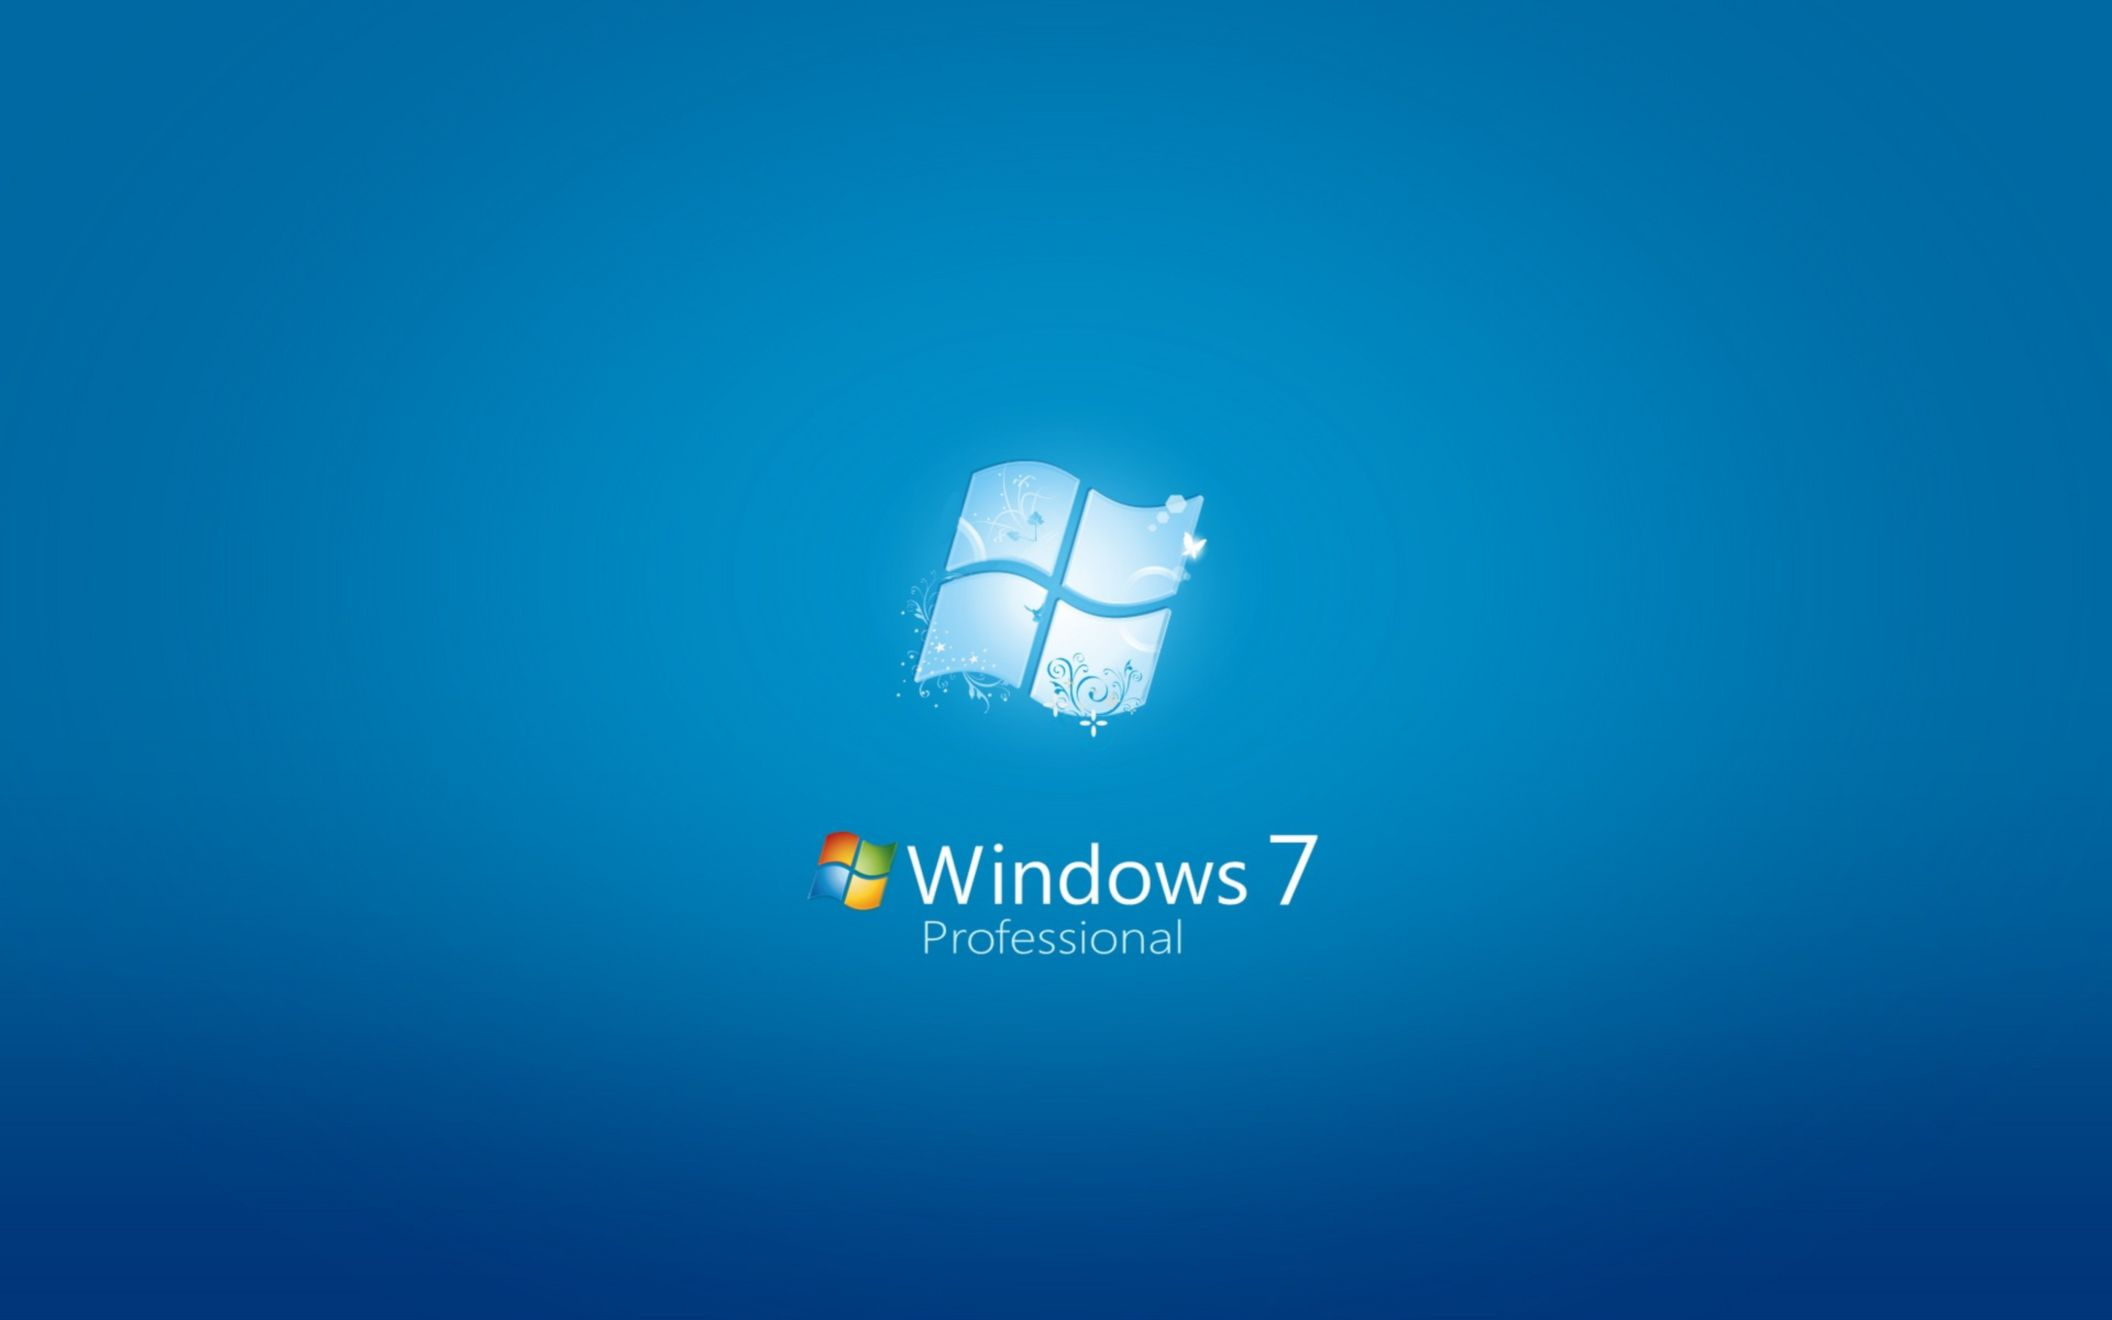 Download free HD Windows 7 Professional Wide Wallpaper, image